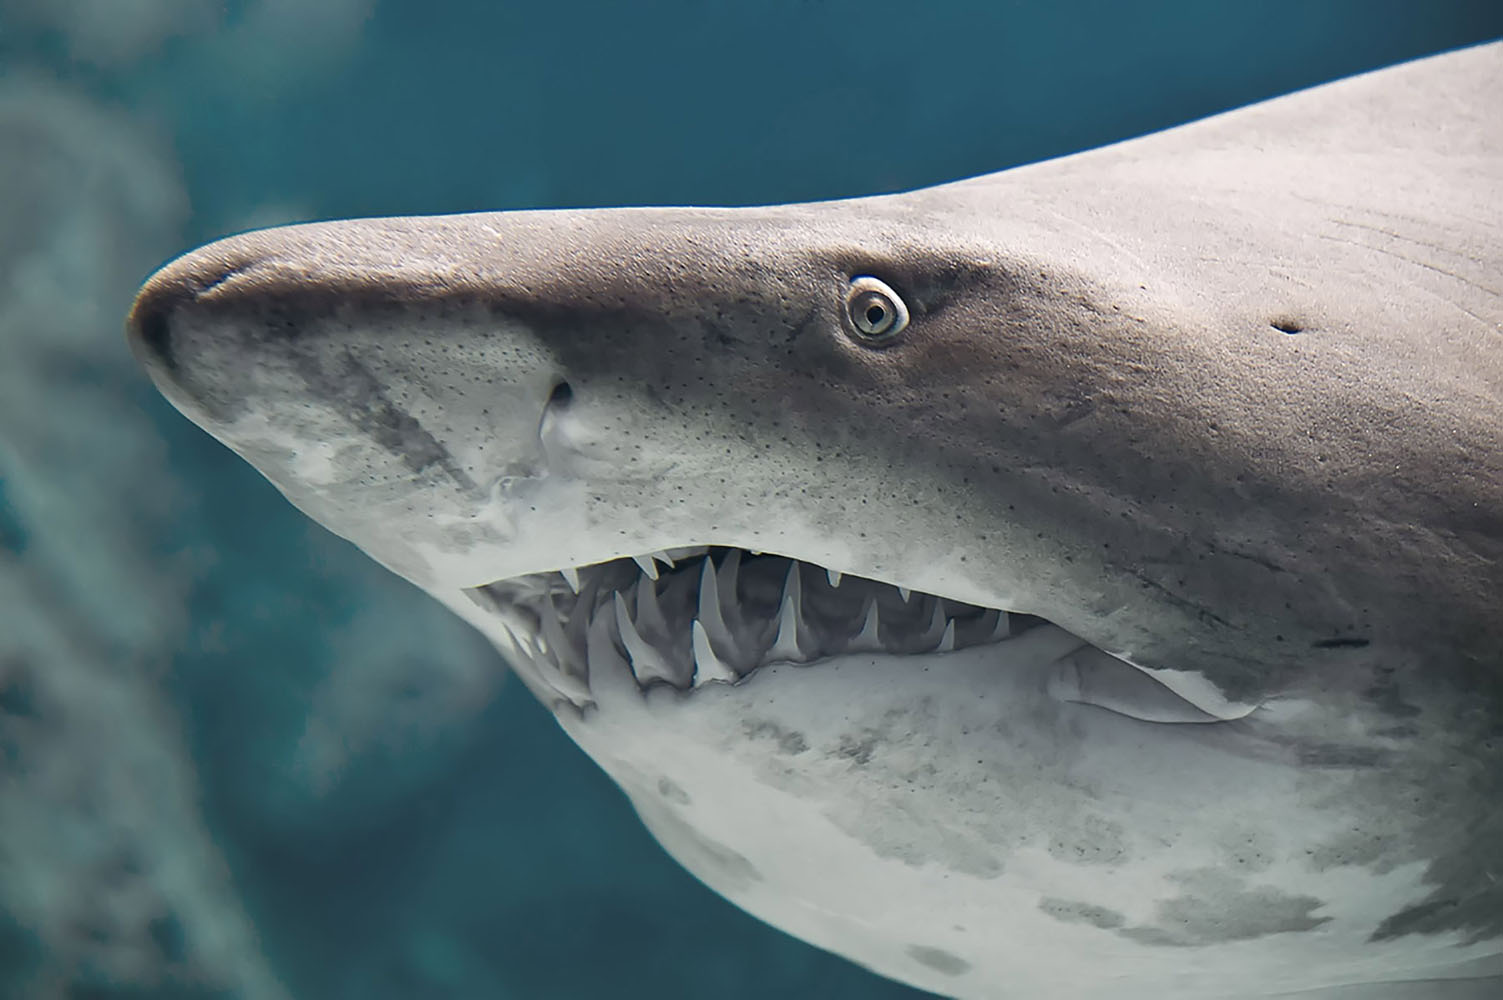 Bull shark close up